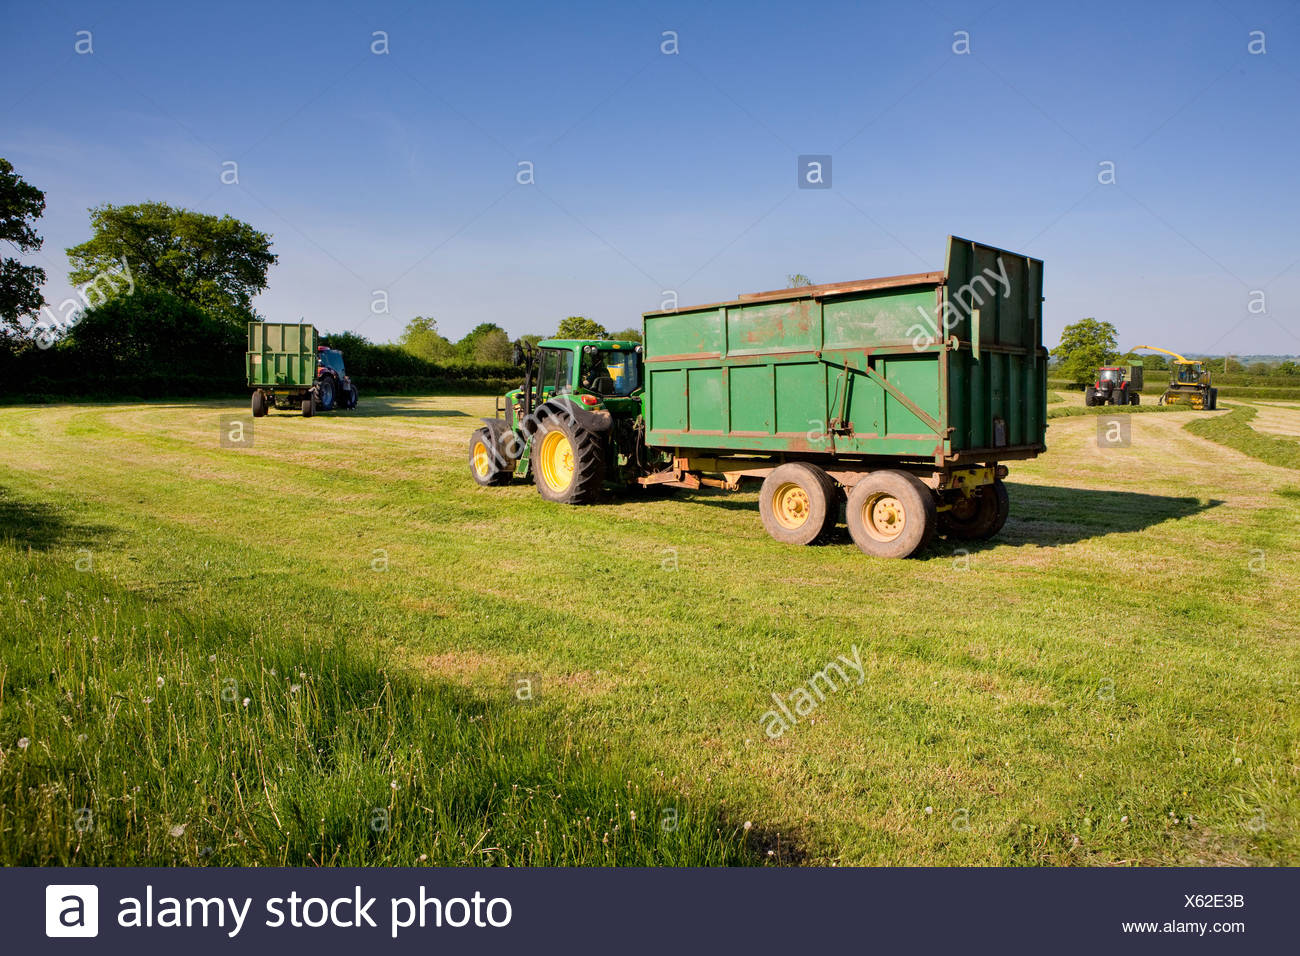 Tractor harvesting silage in farm field - Stock Image